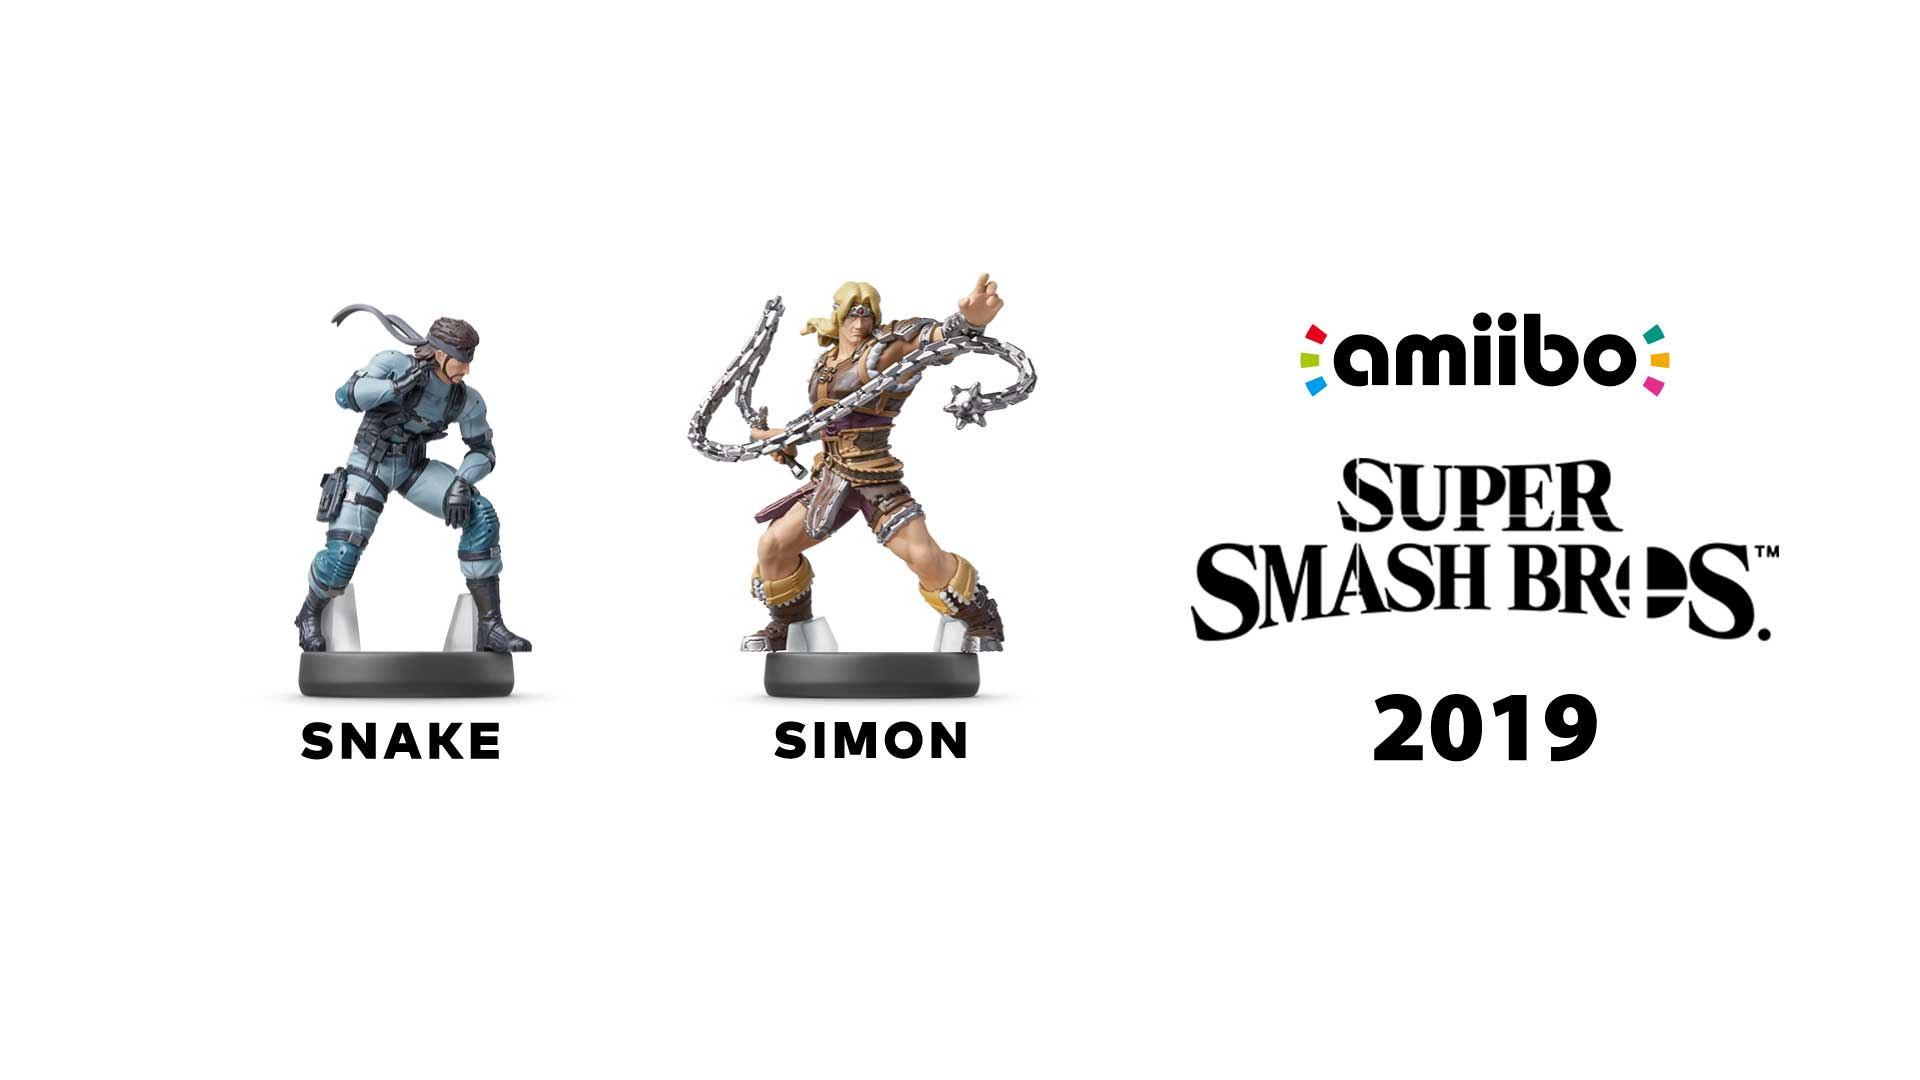 Nintendo teases Super Smash Bros